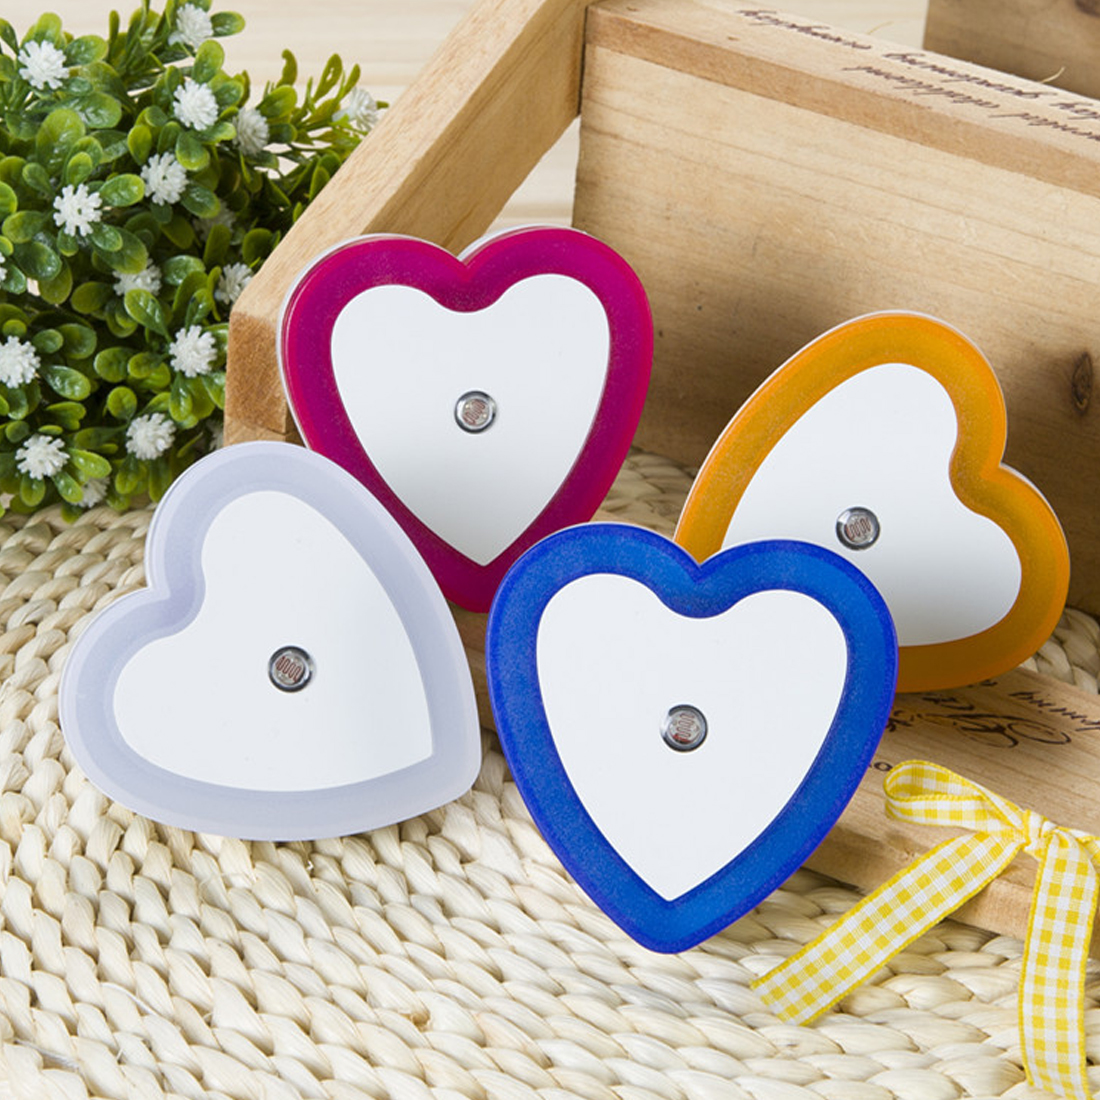 Auto LED Light Induction Sensor Control Bedroom Romantic Night Lights Bed Lamp Heart Shape 110-220V EU Plug 4 Colors